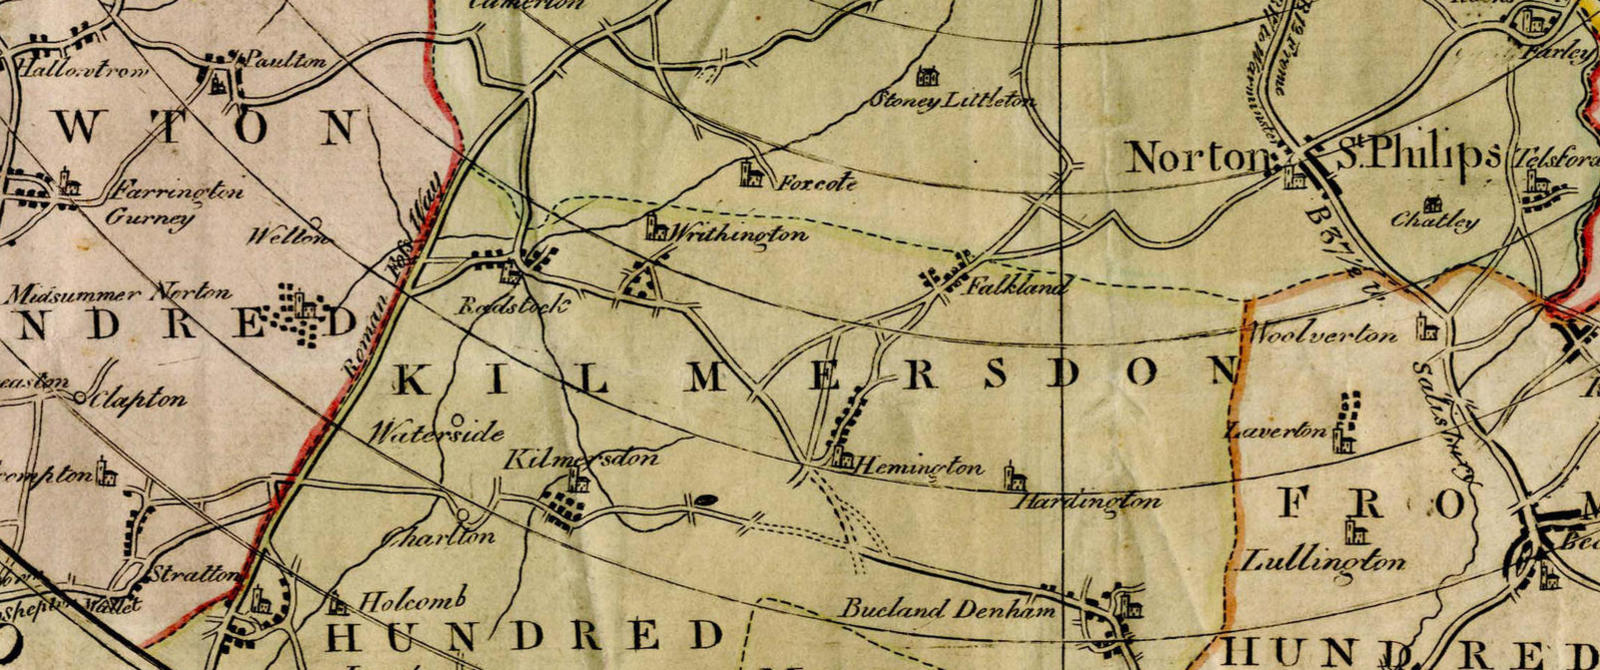 A colourful eighteenth century map of Somerset showing towns and villages around Radstock